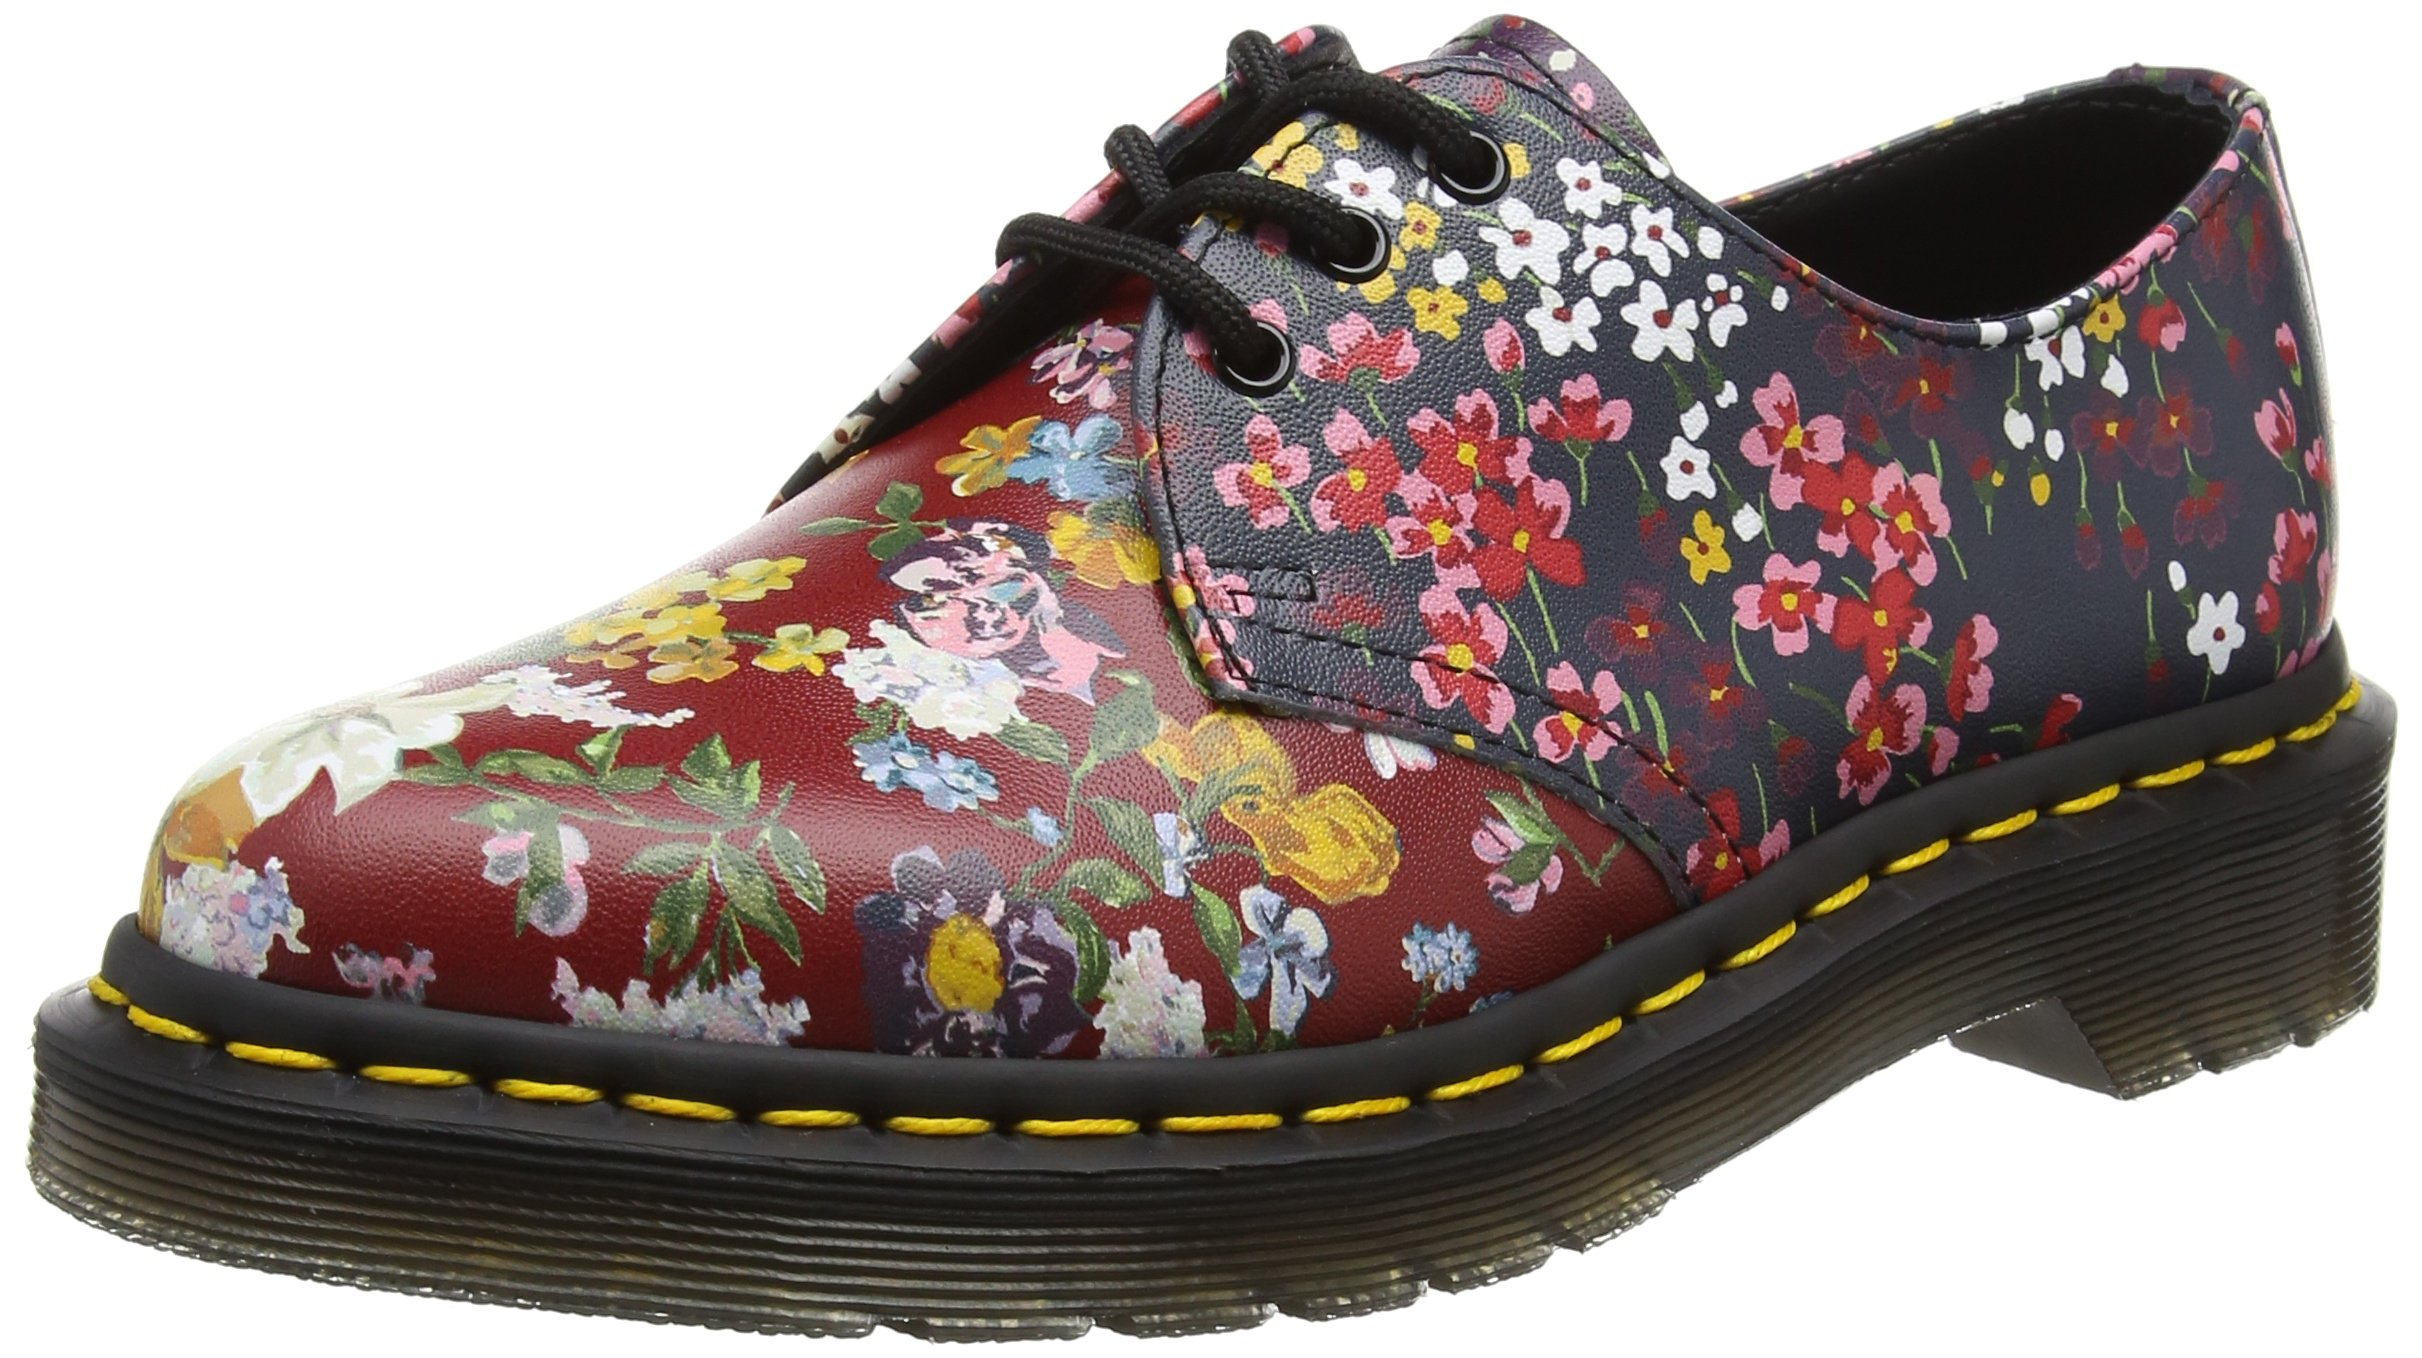 Dr. Martens Women's Floral 1461 Air-Cushioned Fashion Oxfords, Multi, Leather, 8 M UK, 10 M US